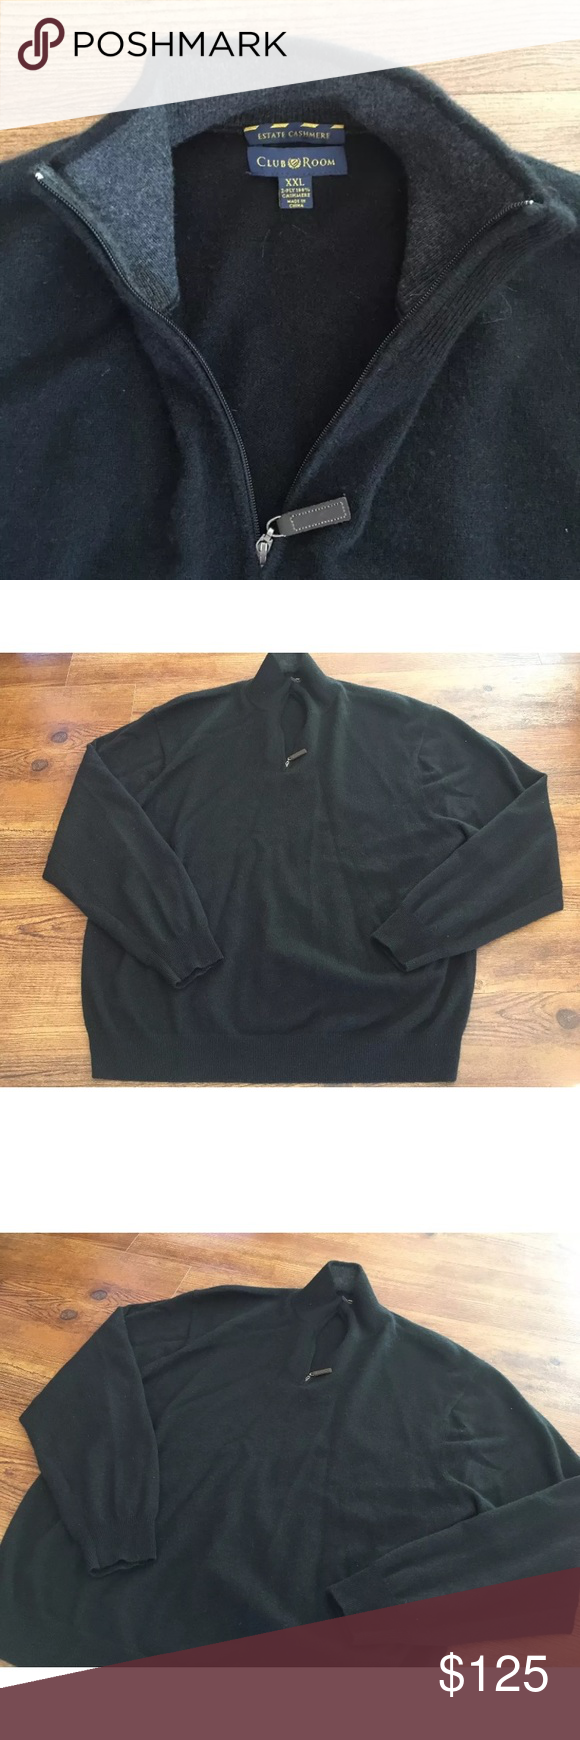 Cashmere Sweater Club Room XXL 2-Ply 100% Estate | Polos, Cashmere ...